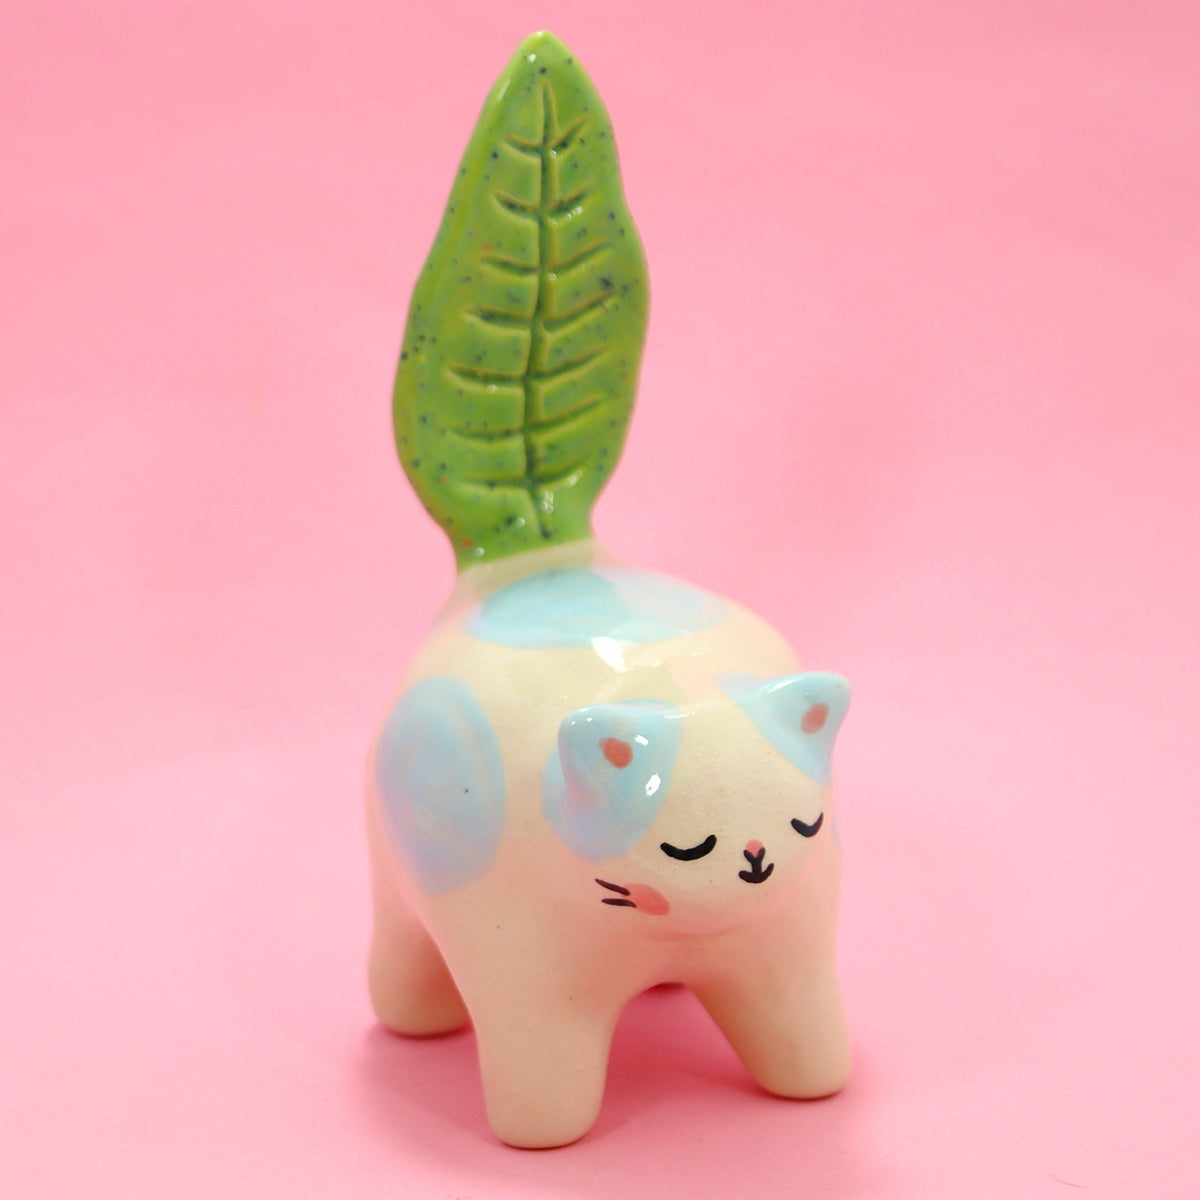 Ceramic Kitty Planter #1265 - XS